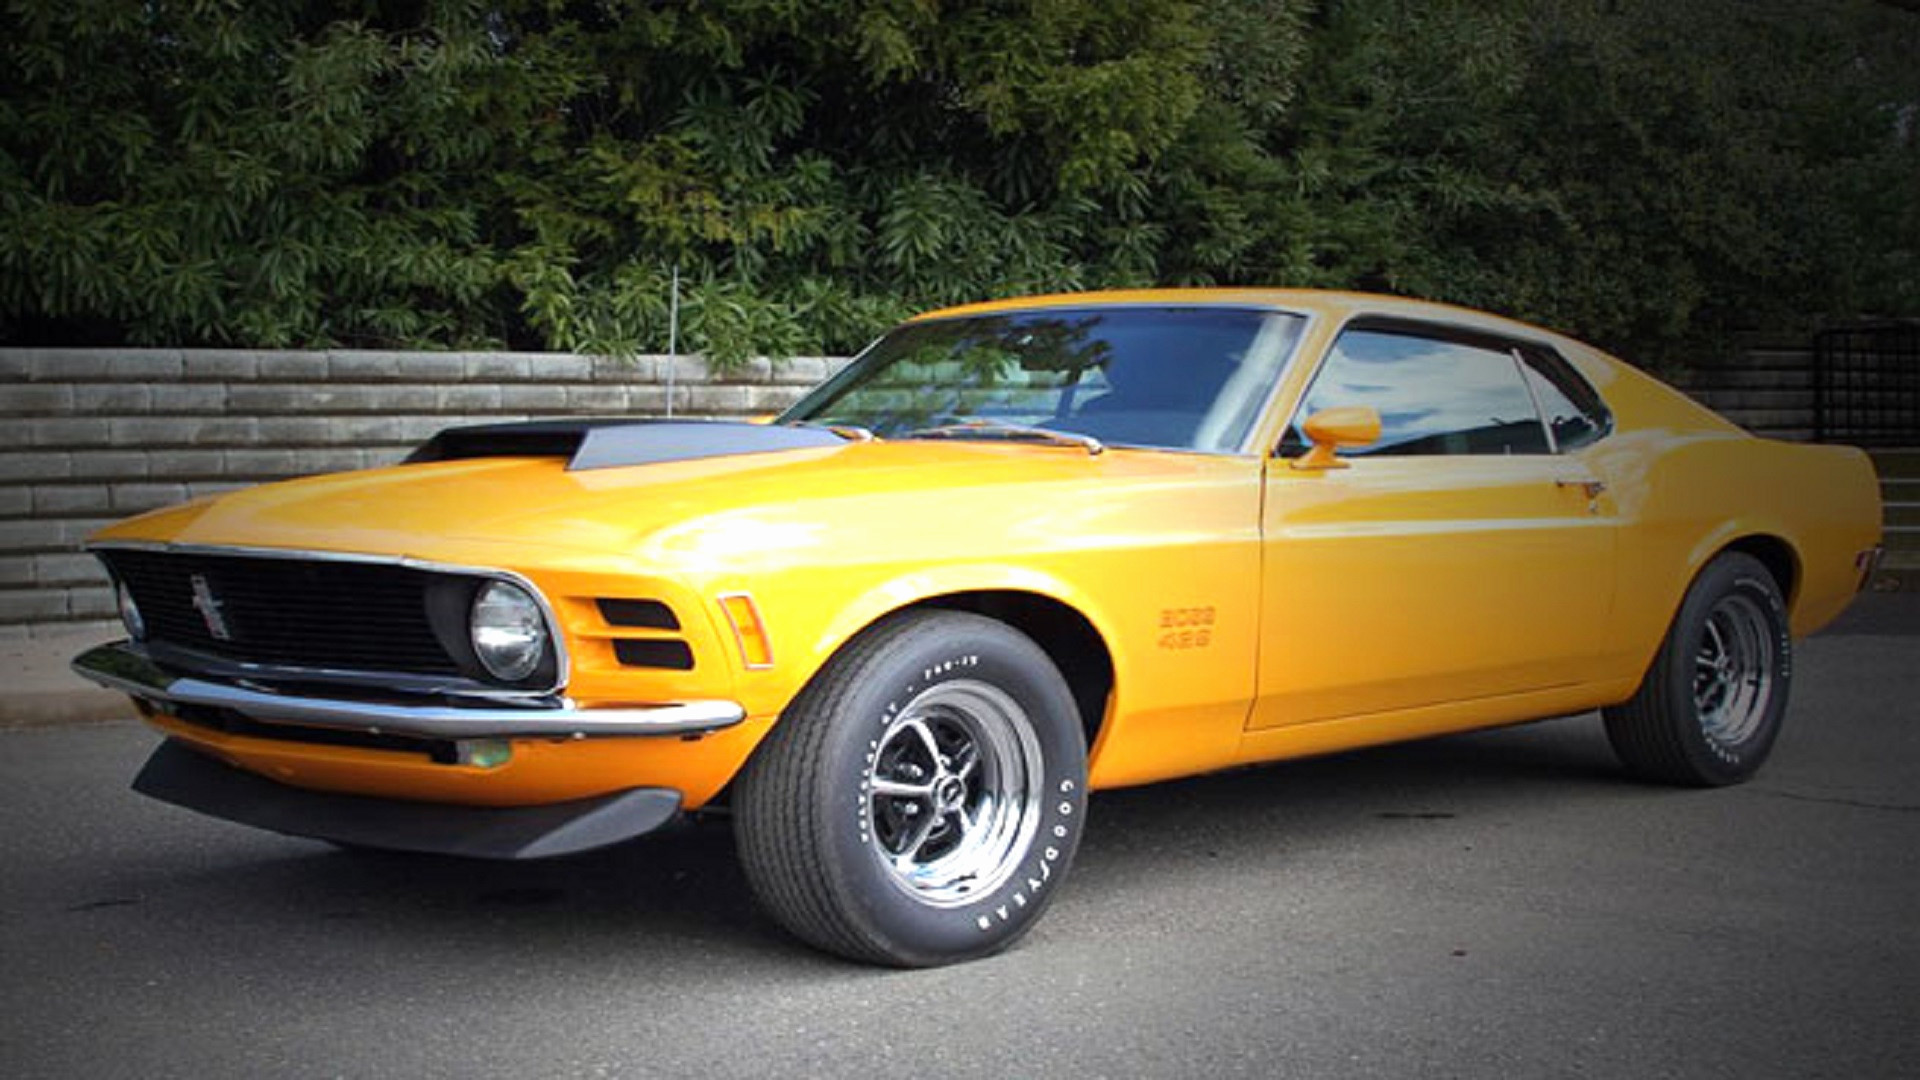 Cool Muscle Car Wallpapers Full Hd: American Muscle Car Wallpaper (66+ Images